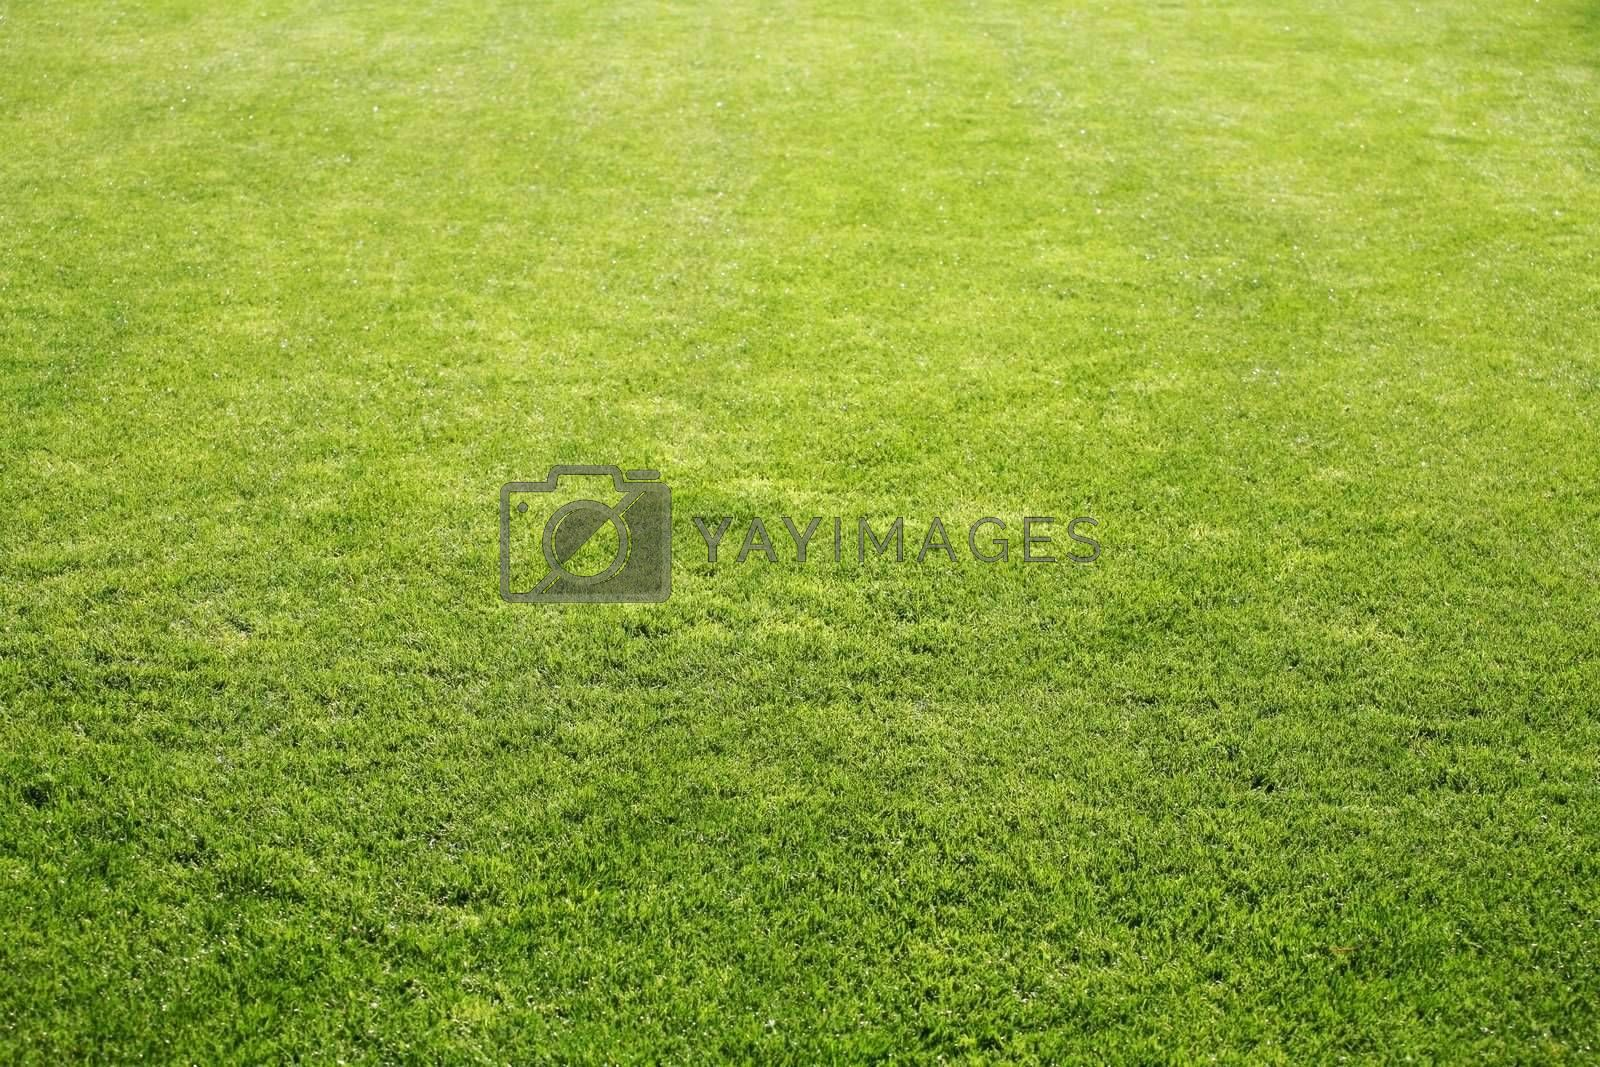 Royalty free image of Grass by scrappinstacy